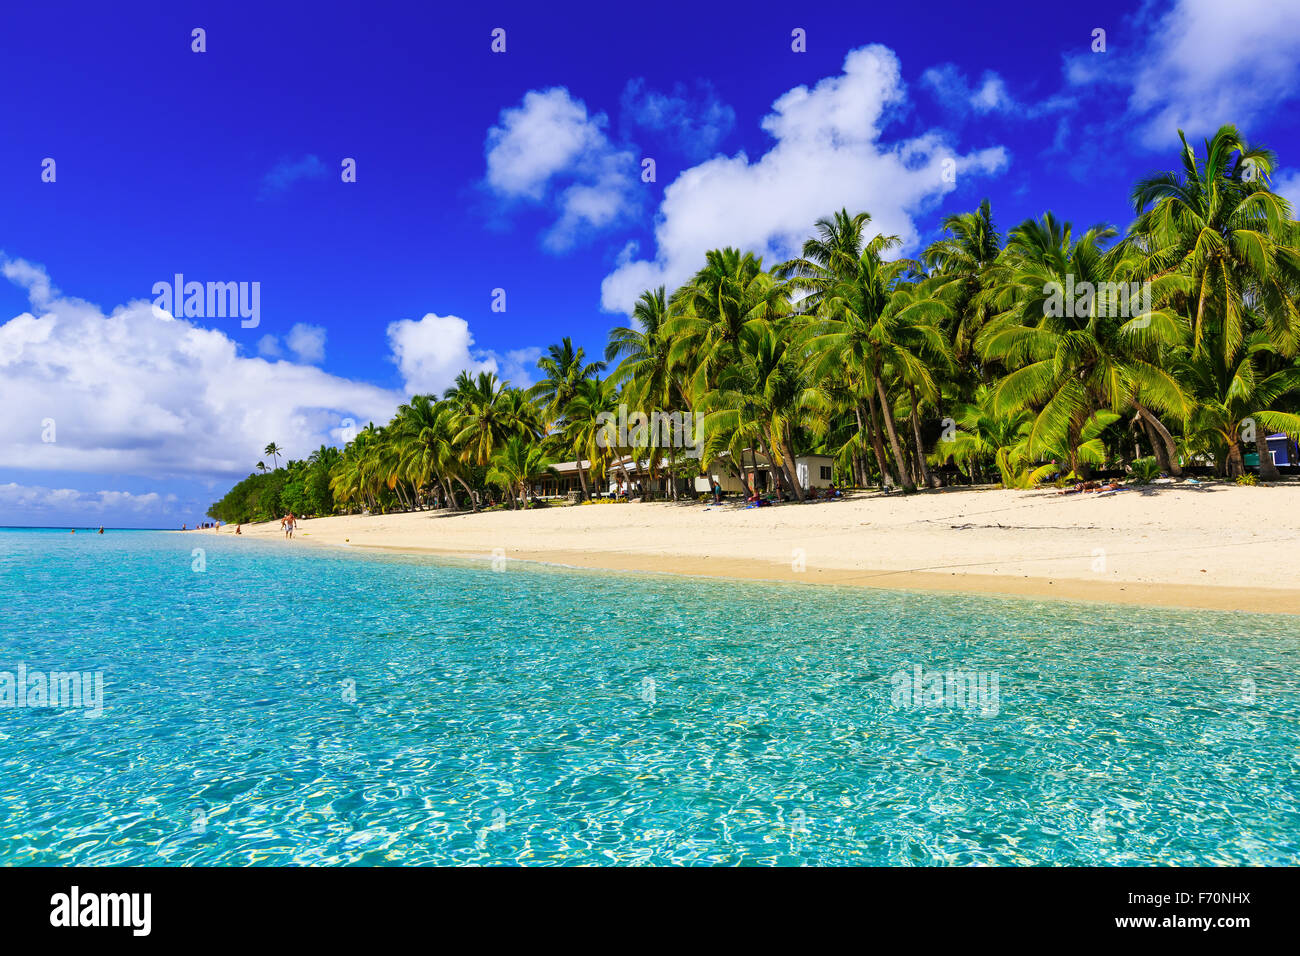 Beach on the tropical island & clear blue water. Dravuni Island, Fiji. - Stock Image